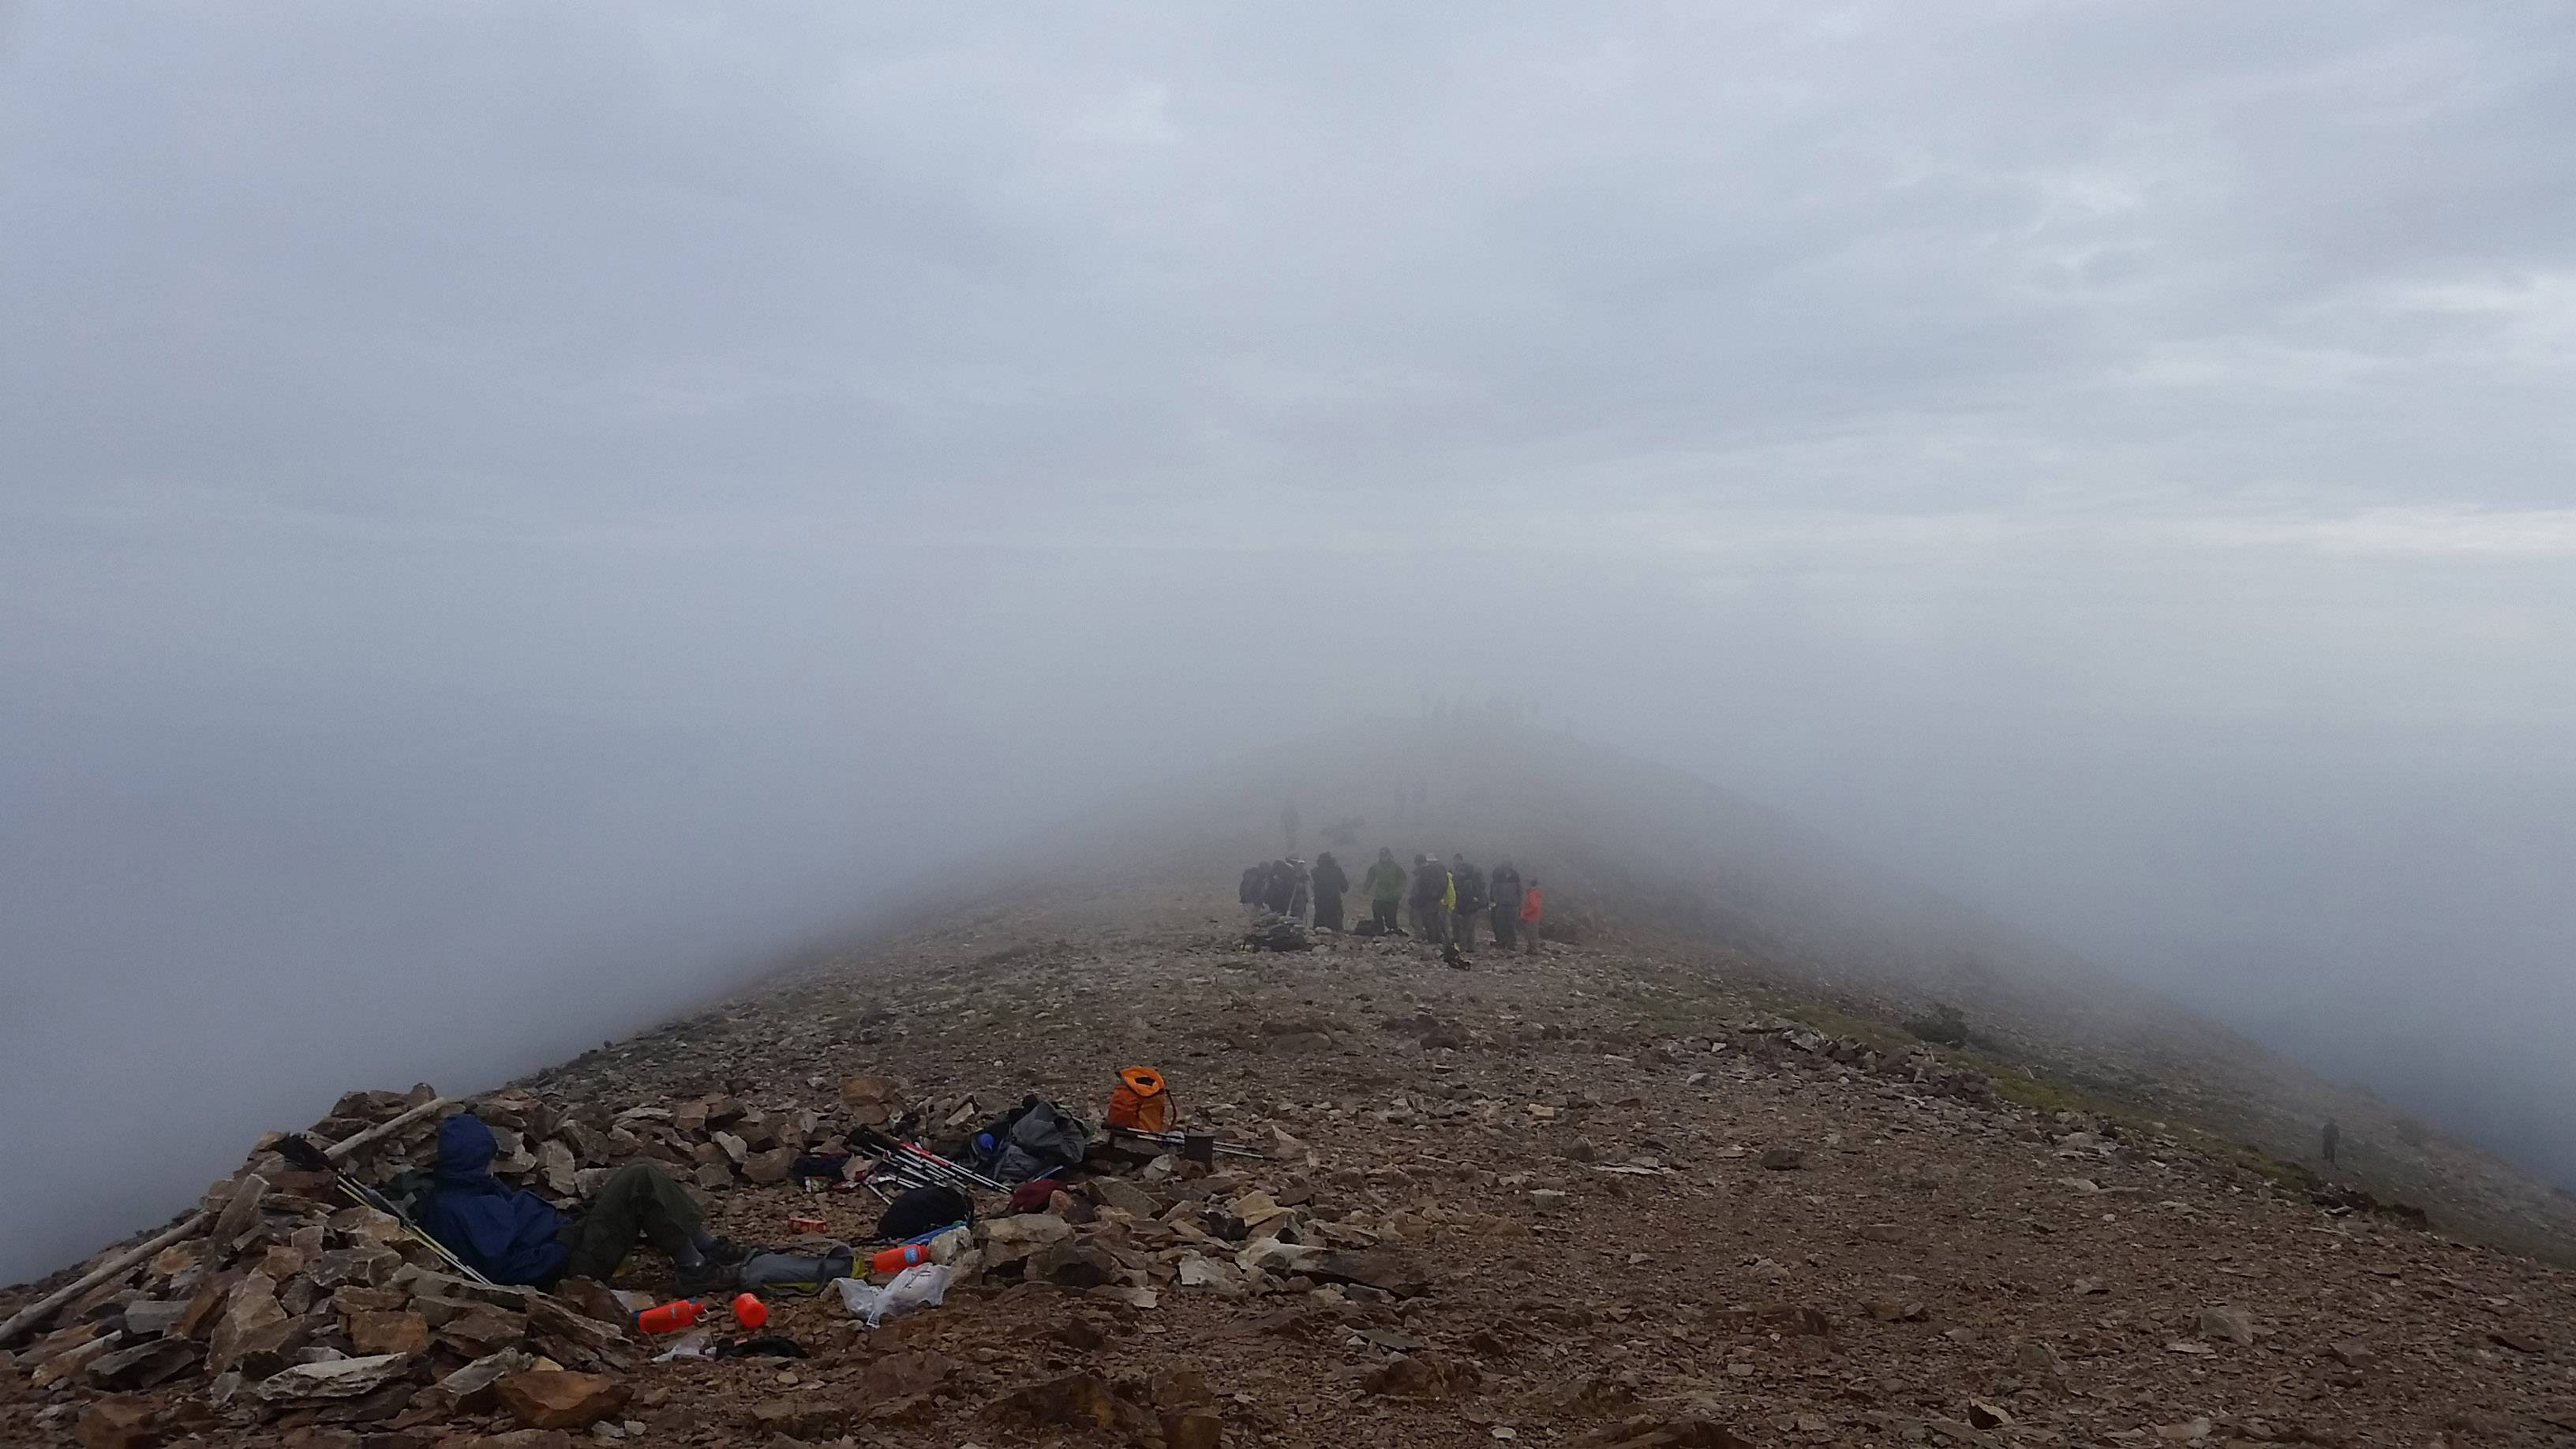 A Boy Scout troop hikes and camps in the clouds at Philmont Scout Ranch, New Mexico last week.